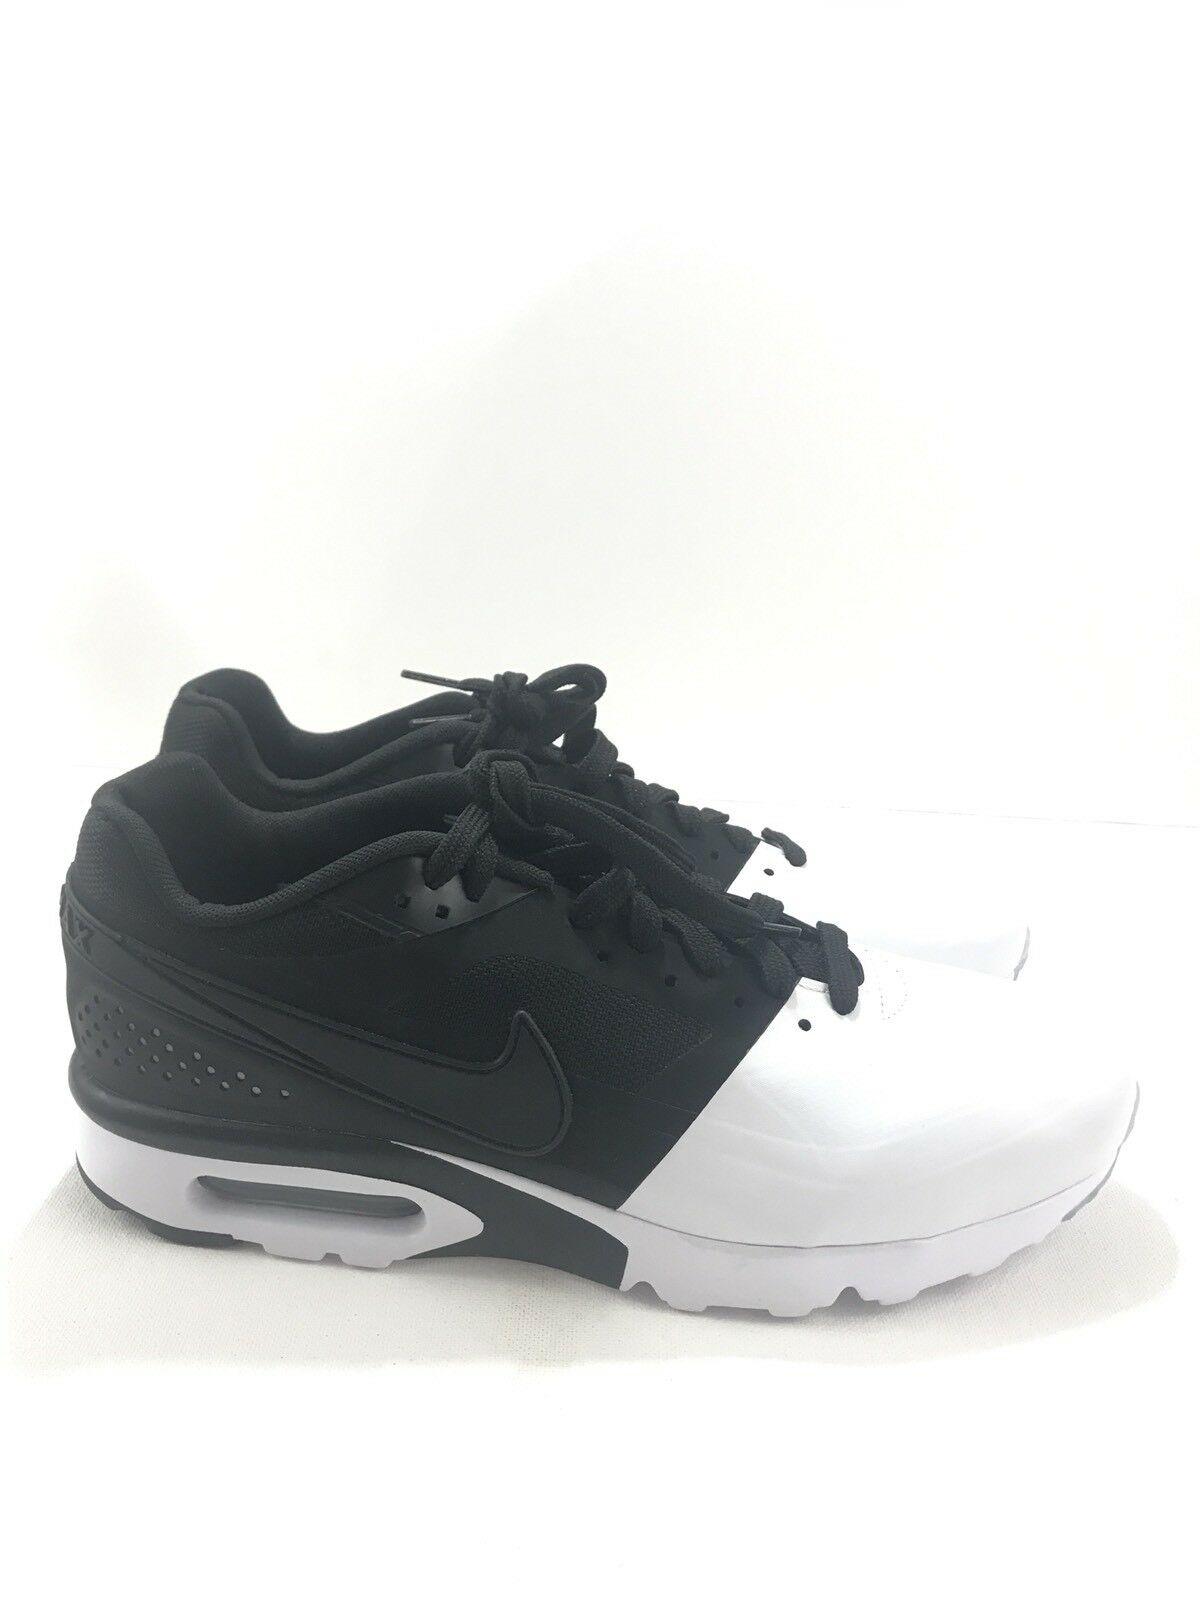 Nike Uomo Air Max BW Ultra SE Size 8.5 Running Shoes Nero White Oreo 844967-101